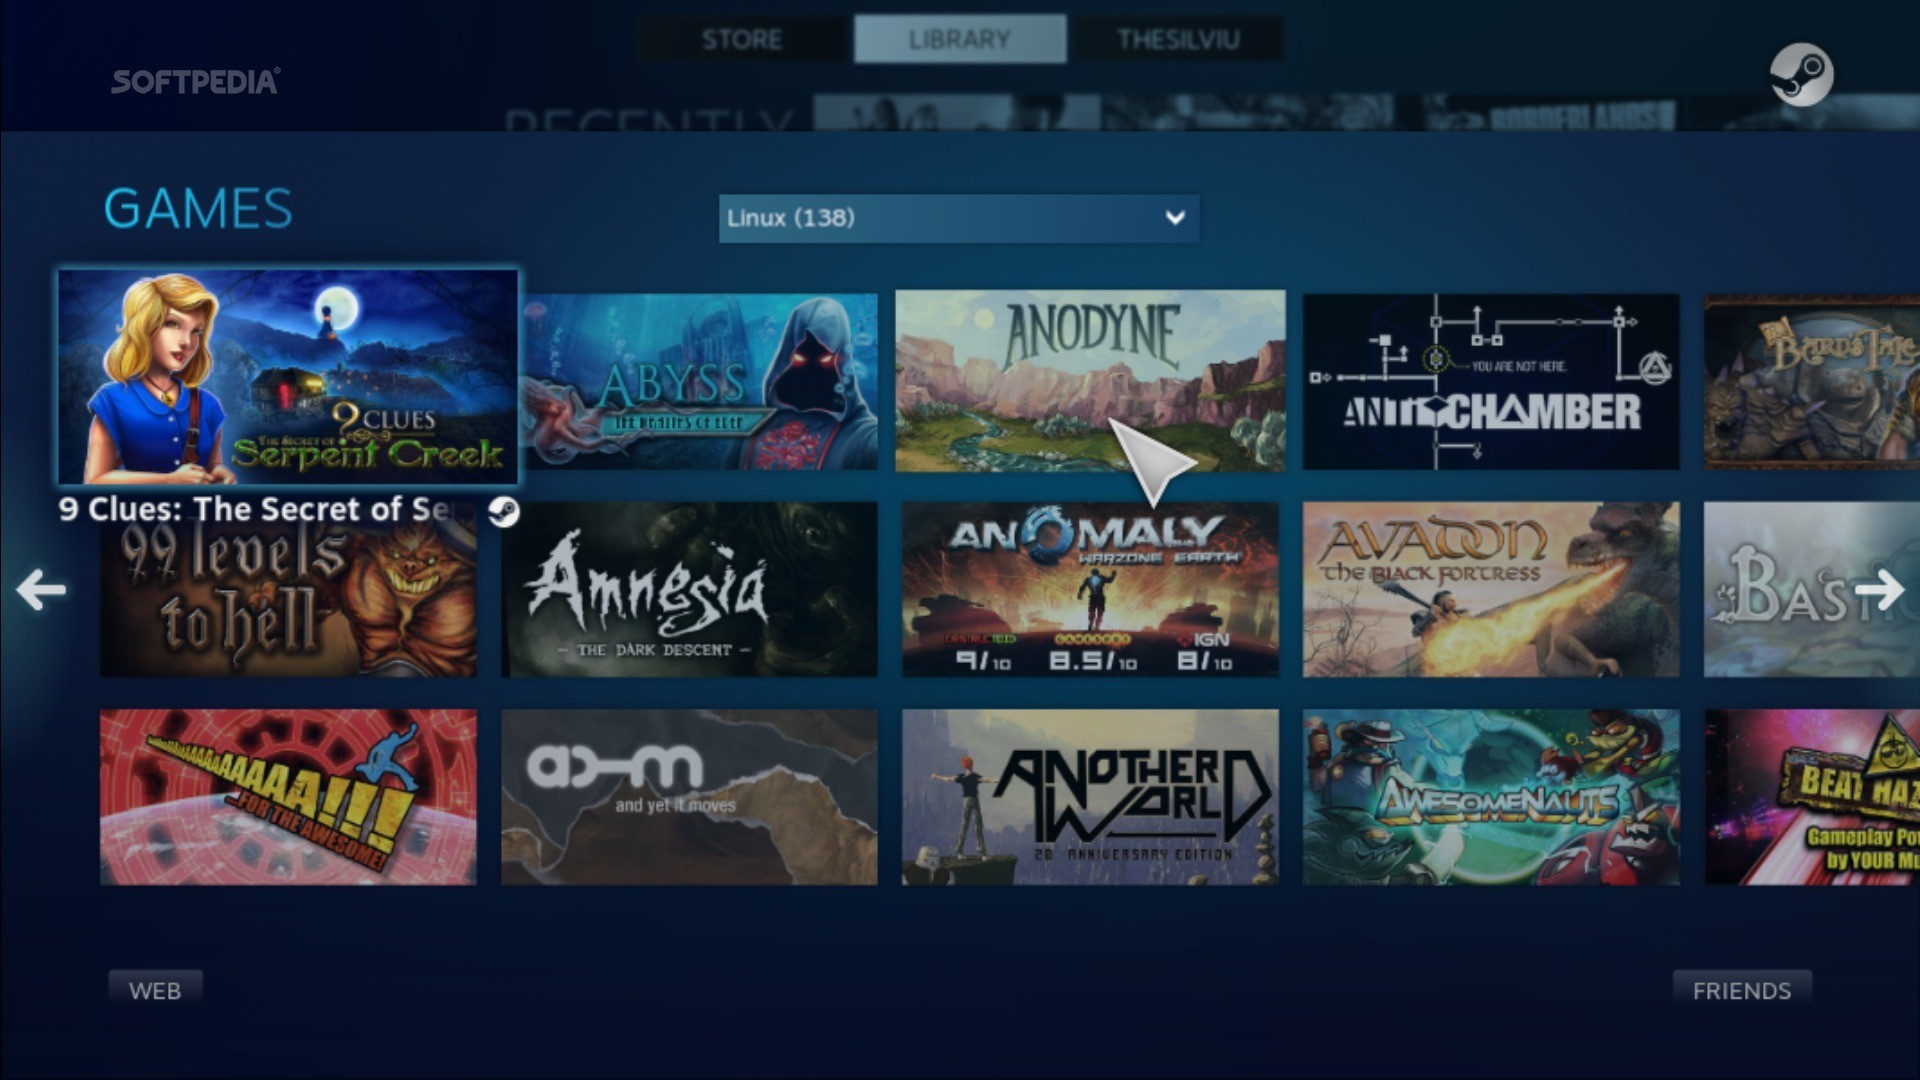 Major SteamOS Update Brings Linux Kernel 4 1, Updates Nvidia and AMD